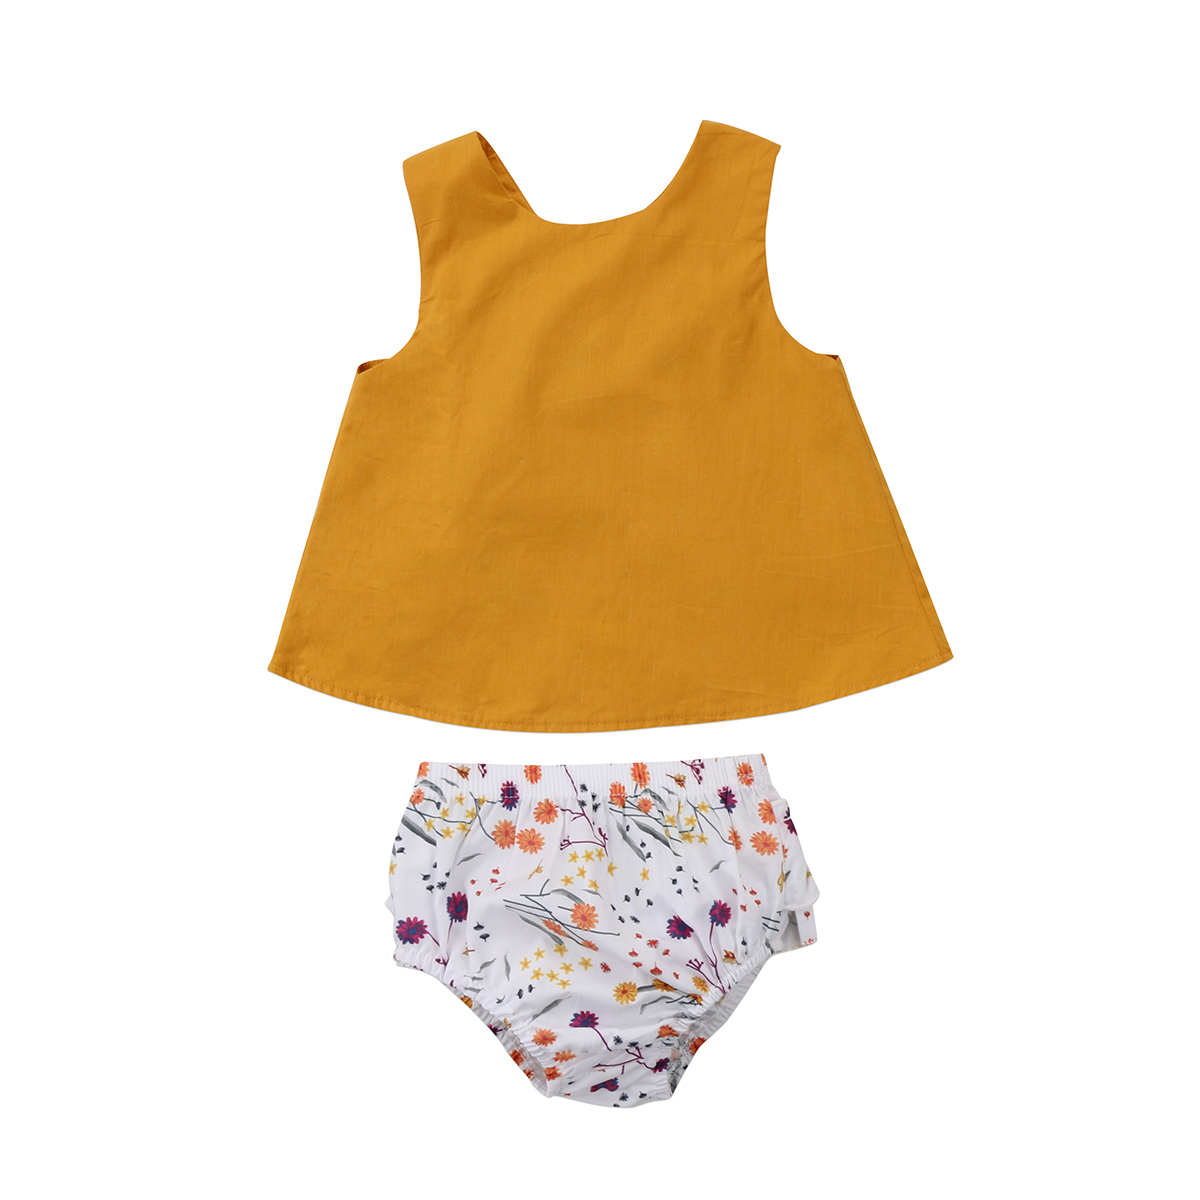 2PCS HOT Sale Newborn Kid Baby Girls Summer Sleeveless O-Neck Yellow Solid Tops+Floral Pants Clothes Set 0-18M